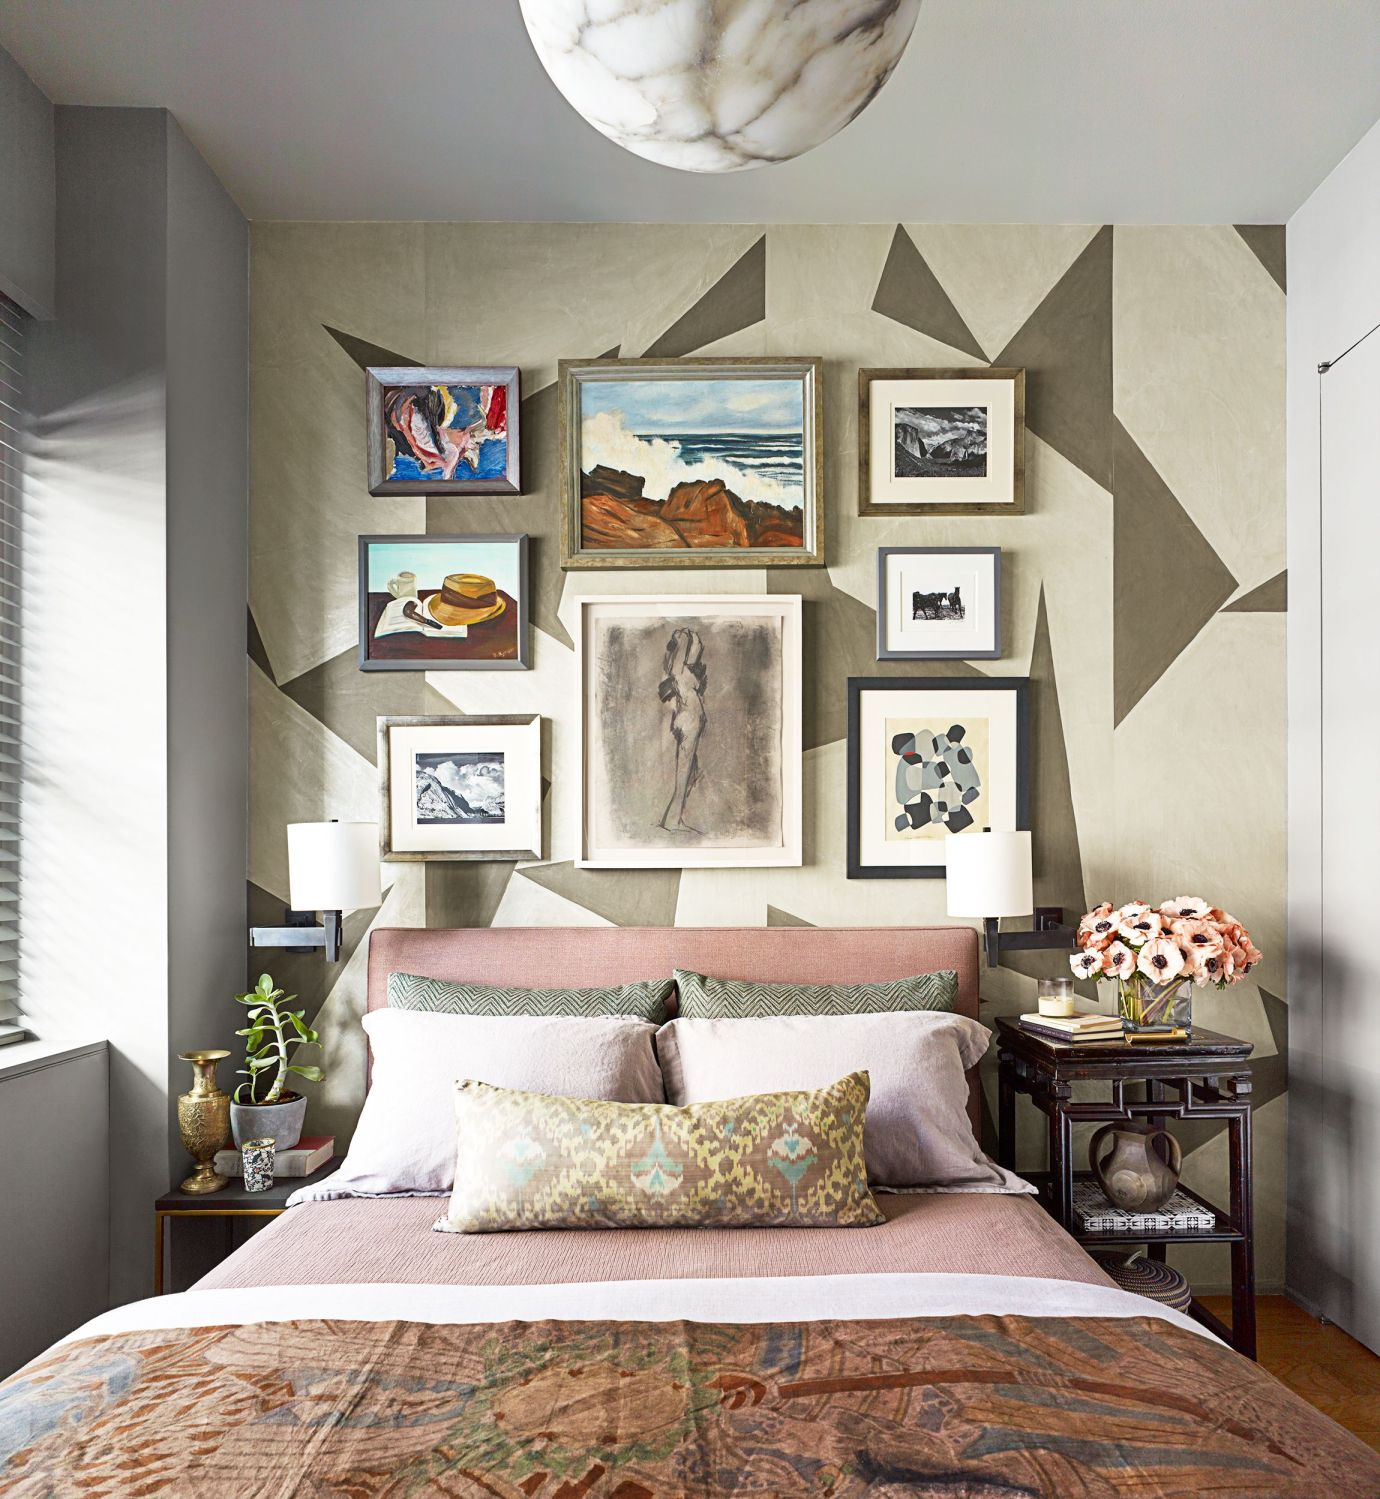 bedroom with geometric wallpaper